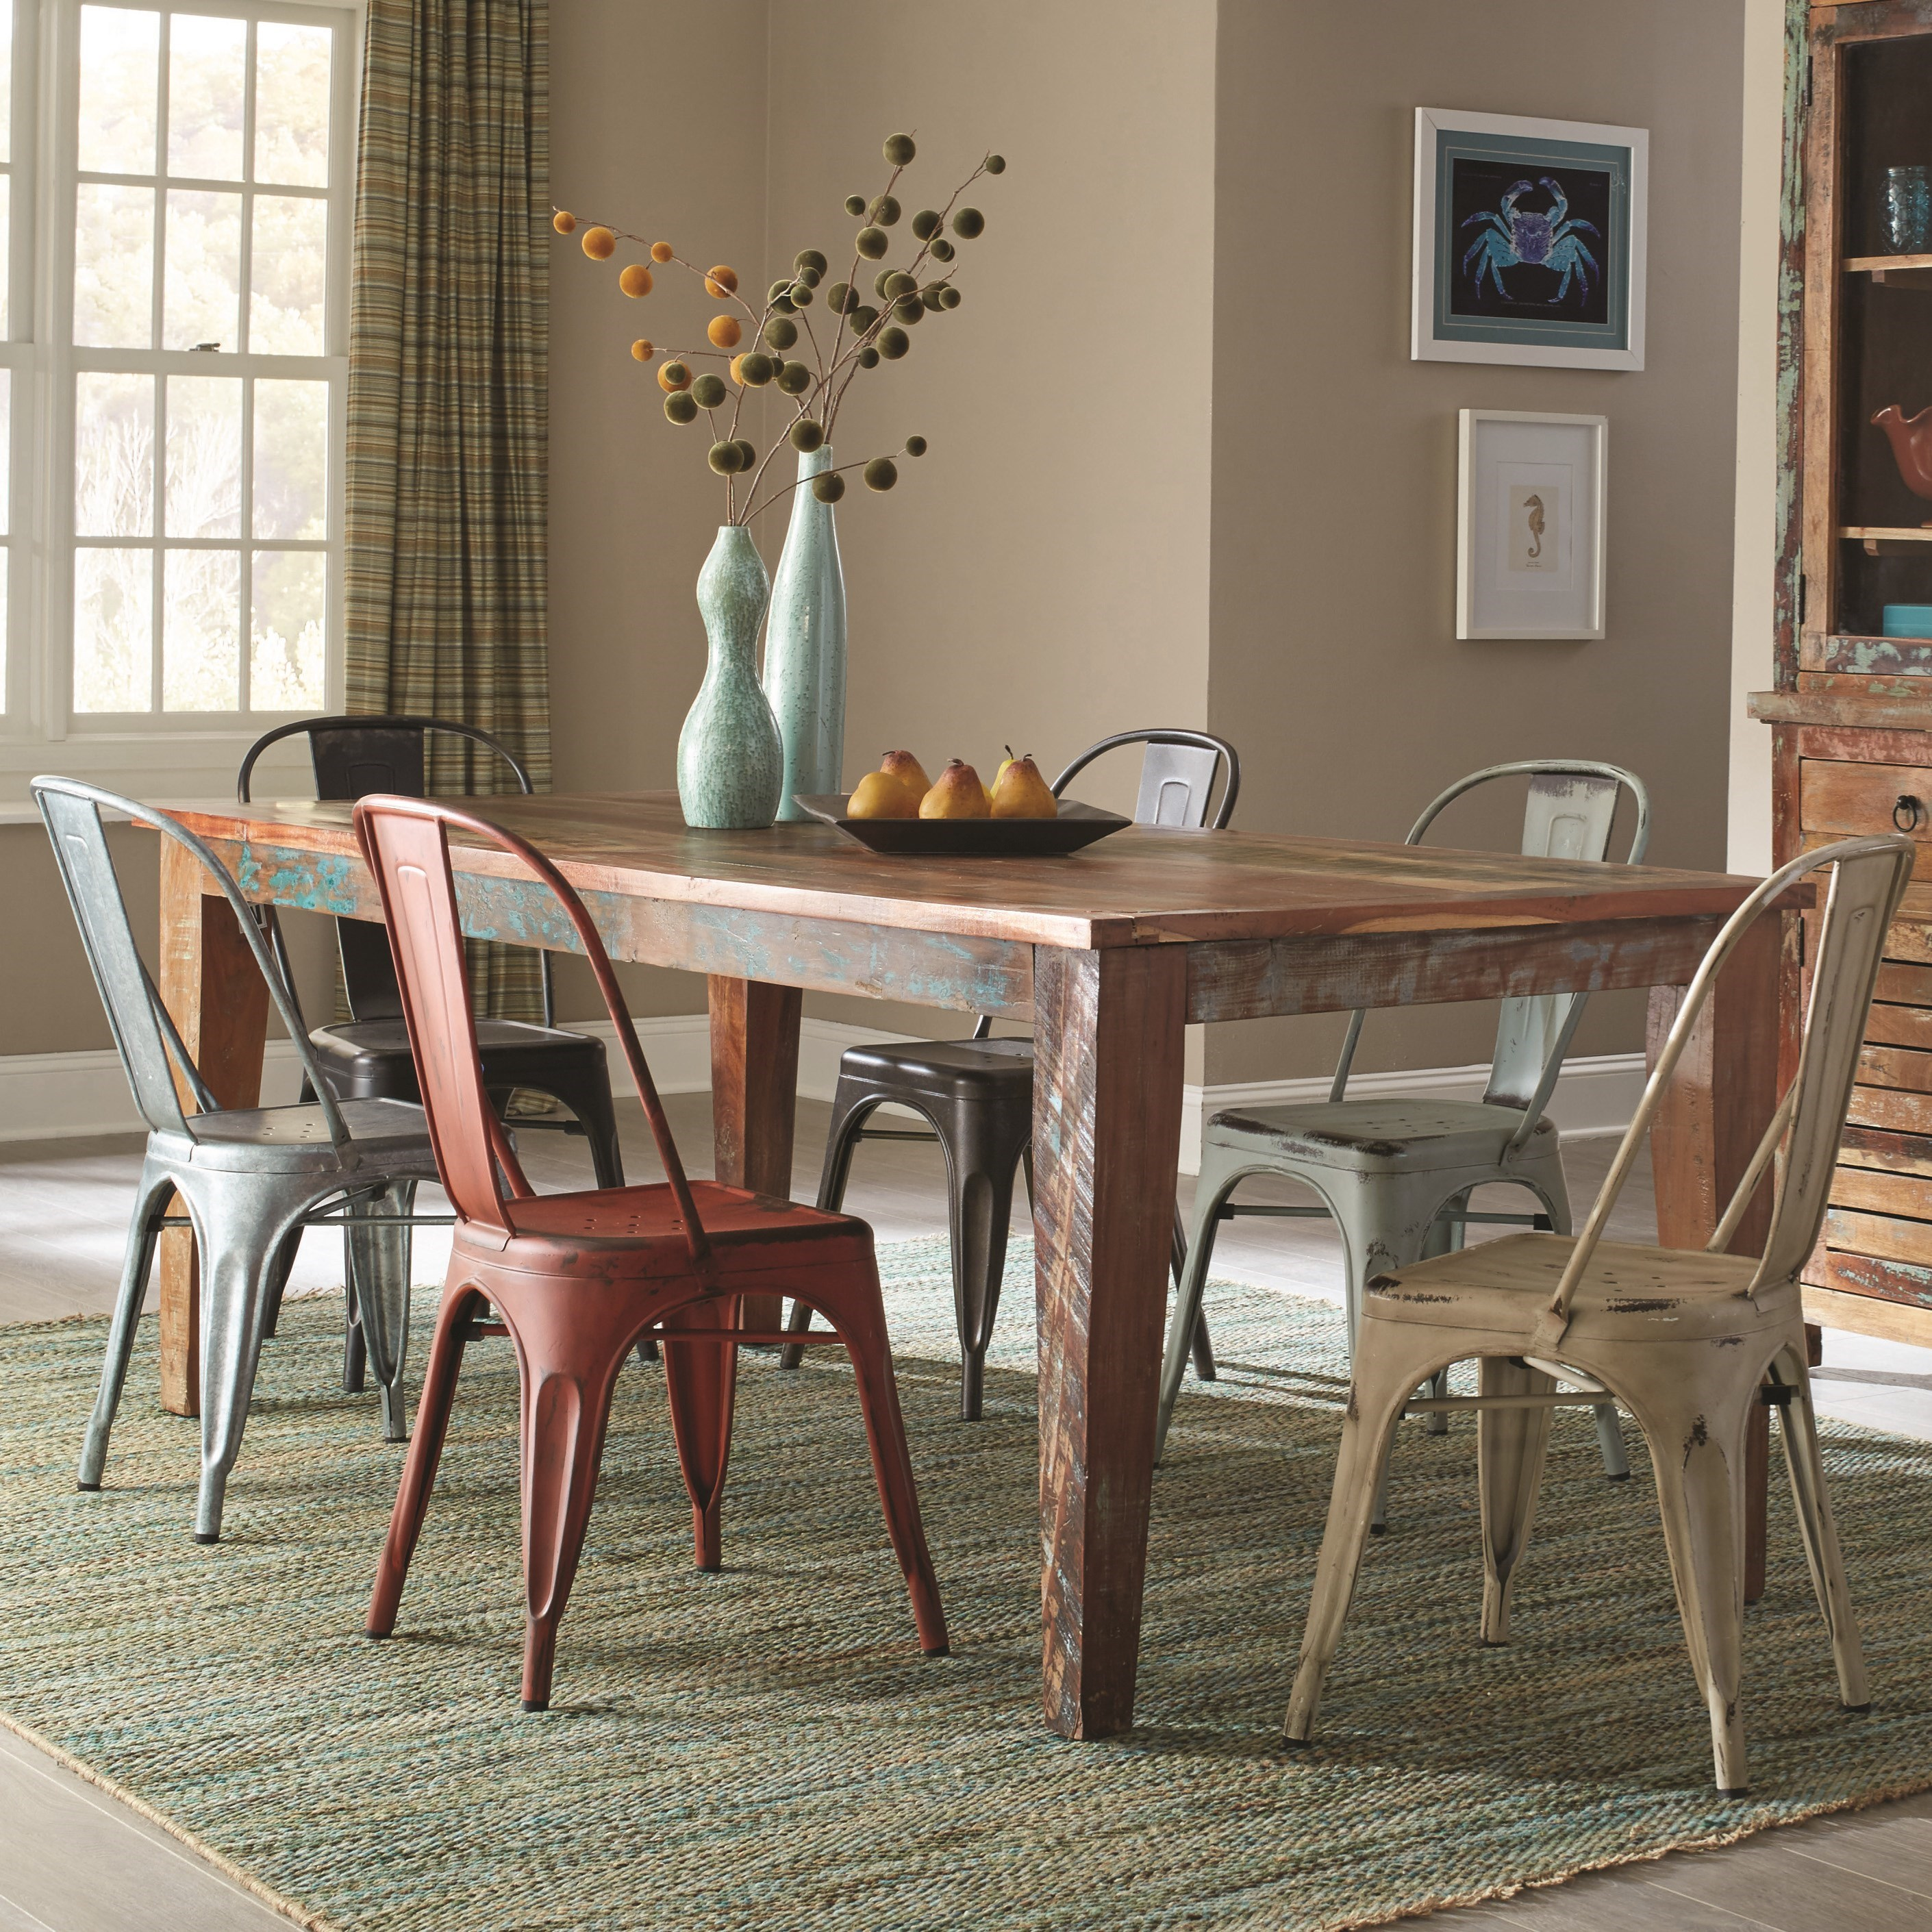 Coaster Keller 7 Piece Table and Chair Set - Item Number: 180161+105612x2+13+14x2+15